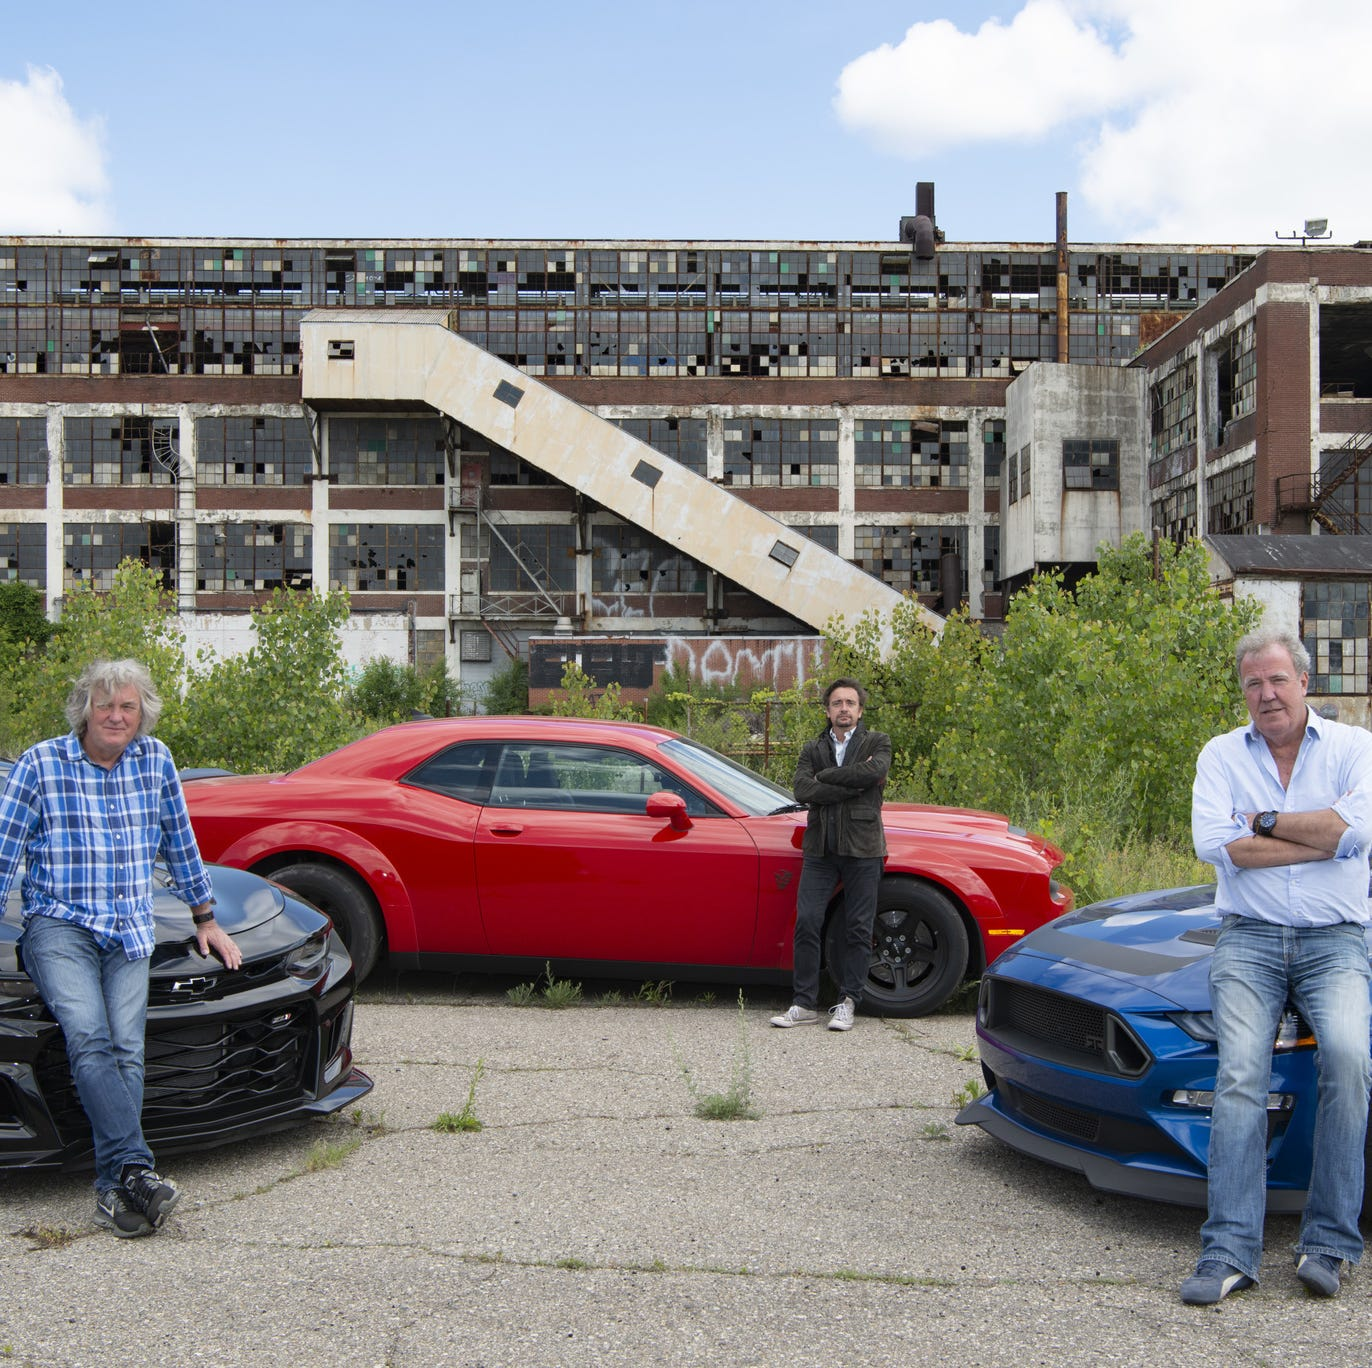 Amazon's 'Grand Tour' drives like a maniac across Detroit in new episode